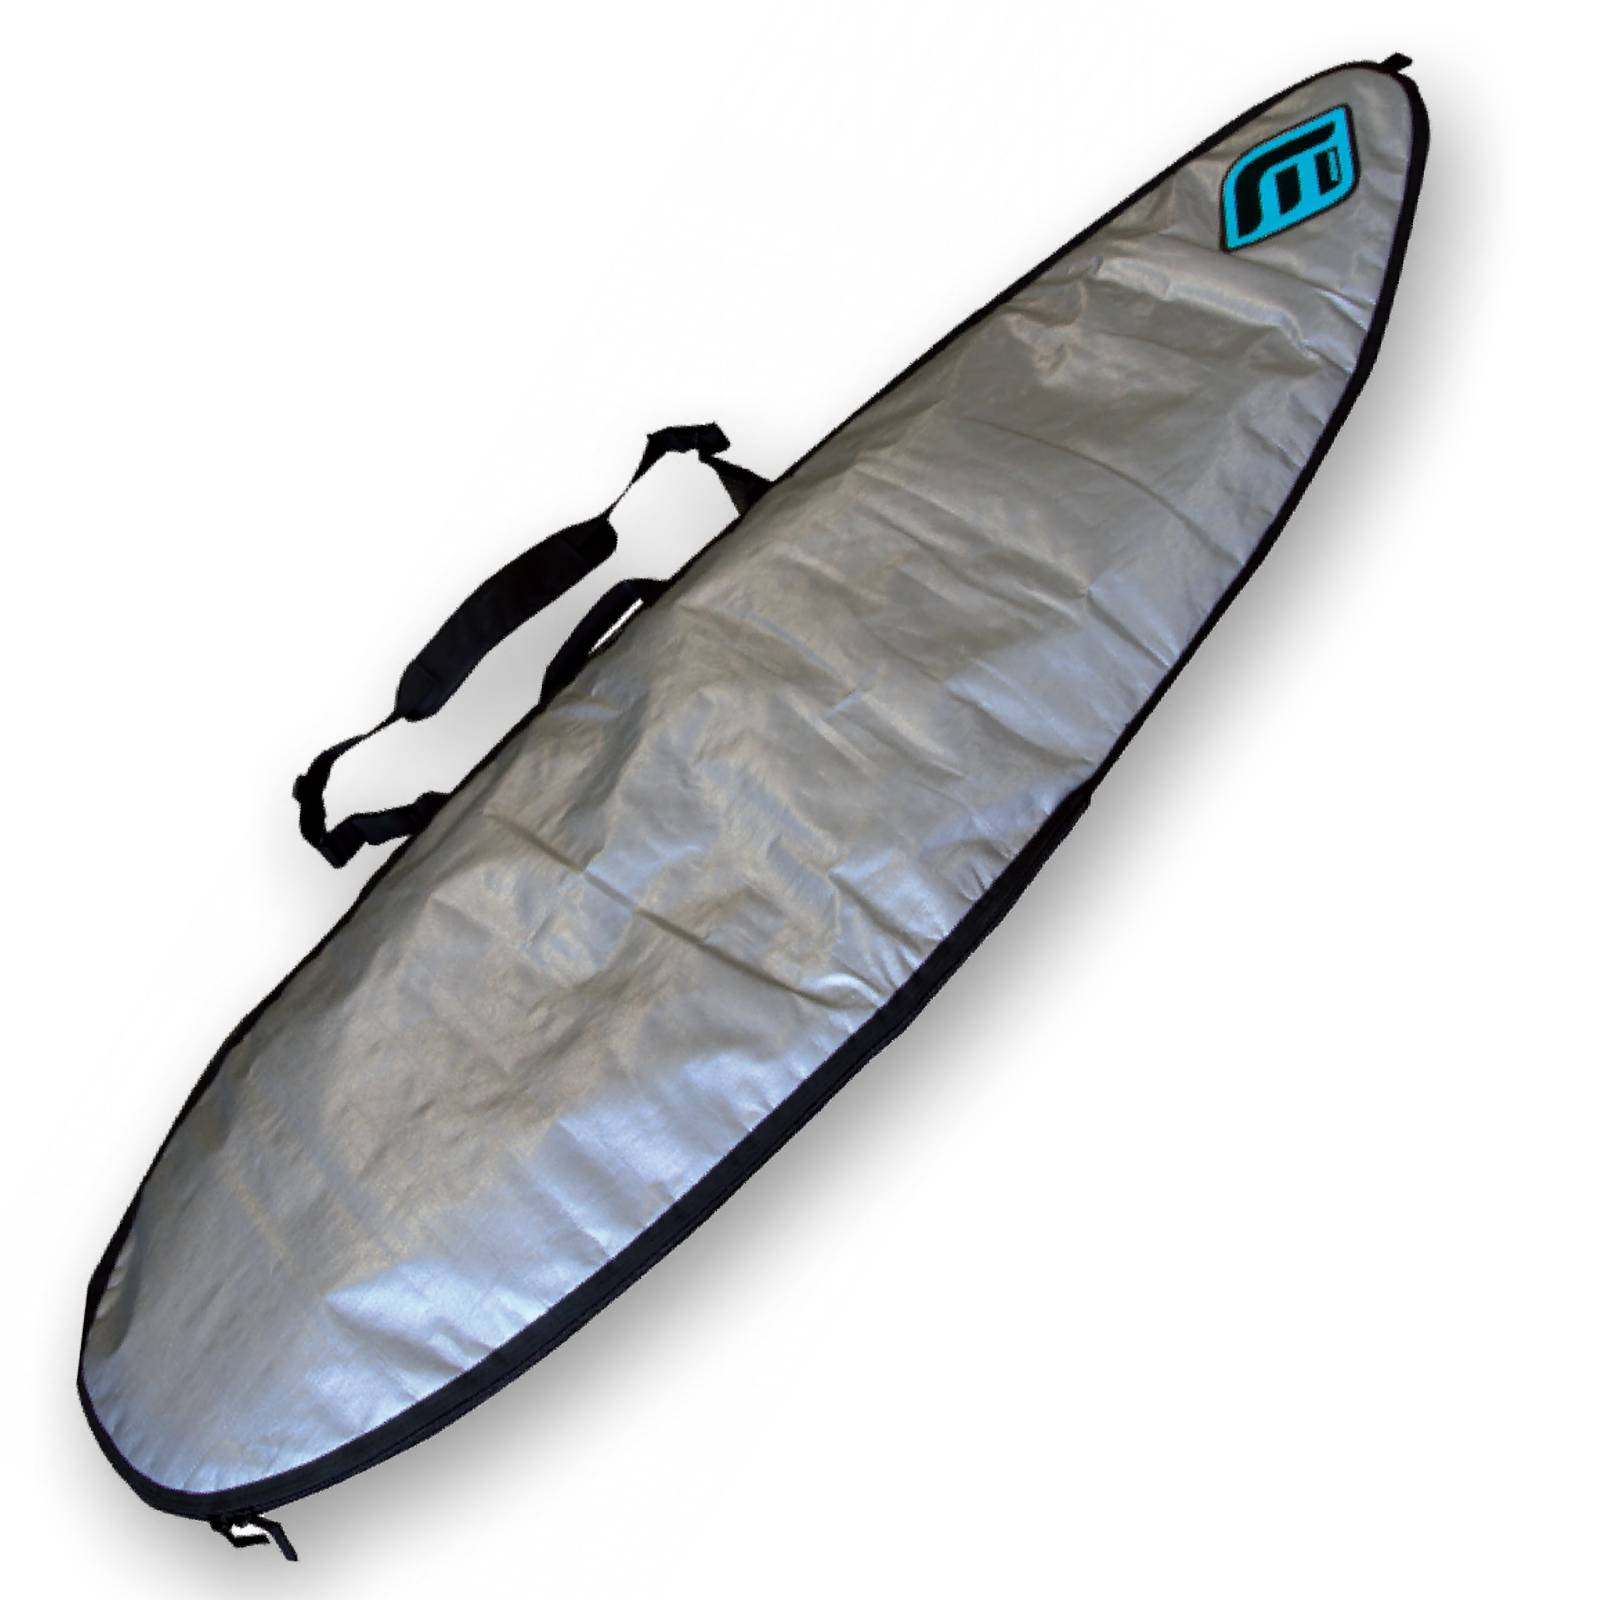 MADNESS Boardbag PE Silver 6.4 Shortboard Daybag